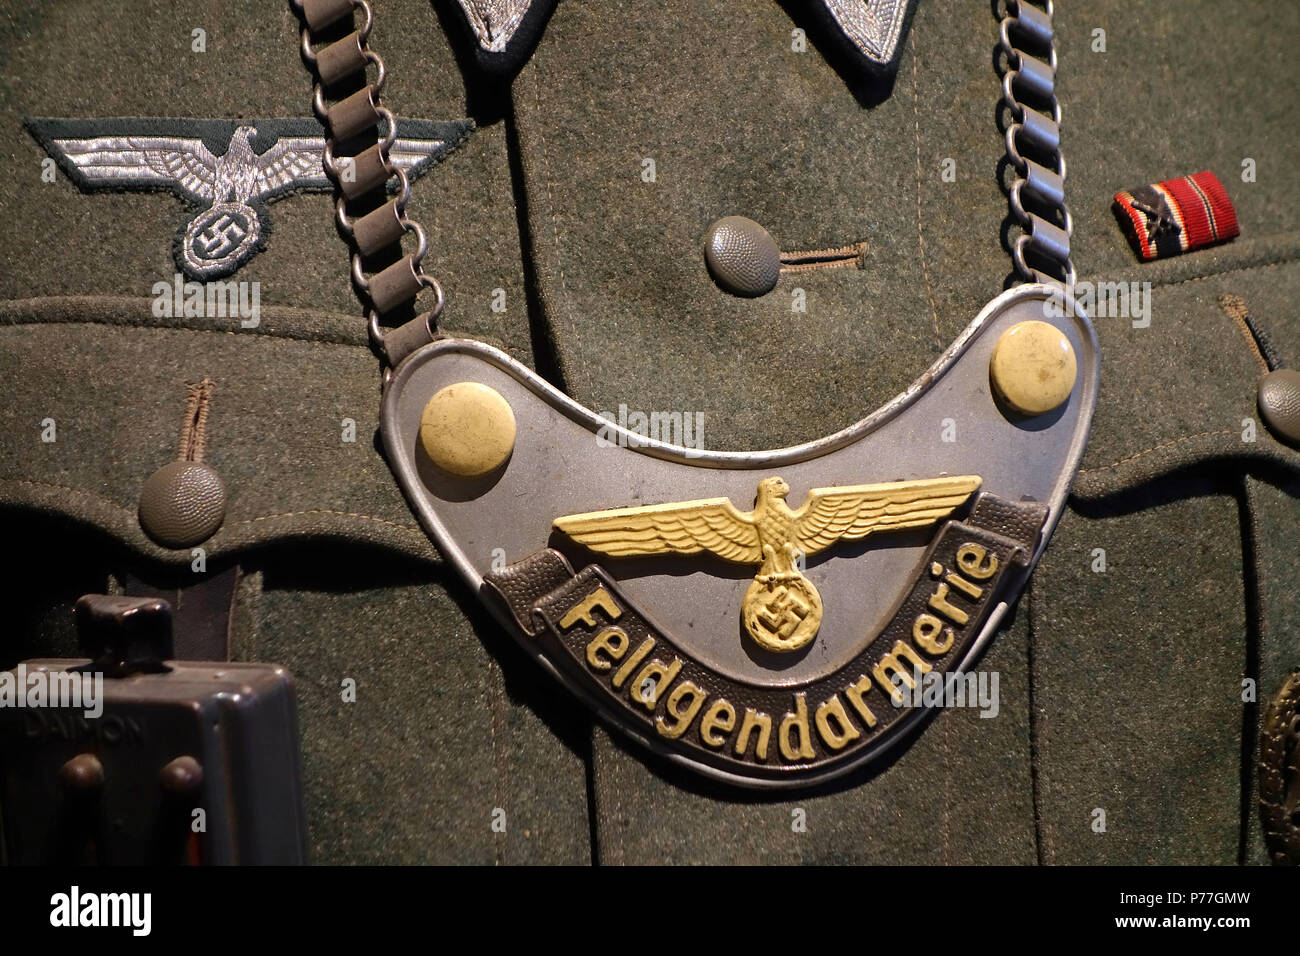 Close-up of WW2 German Feldgendarmerie / military police gorget on military uniform - Stock Image